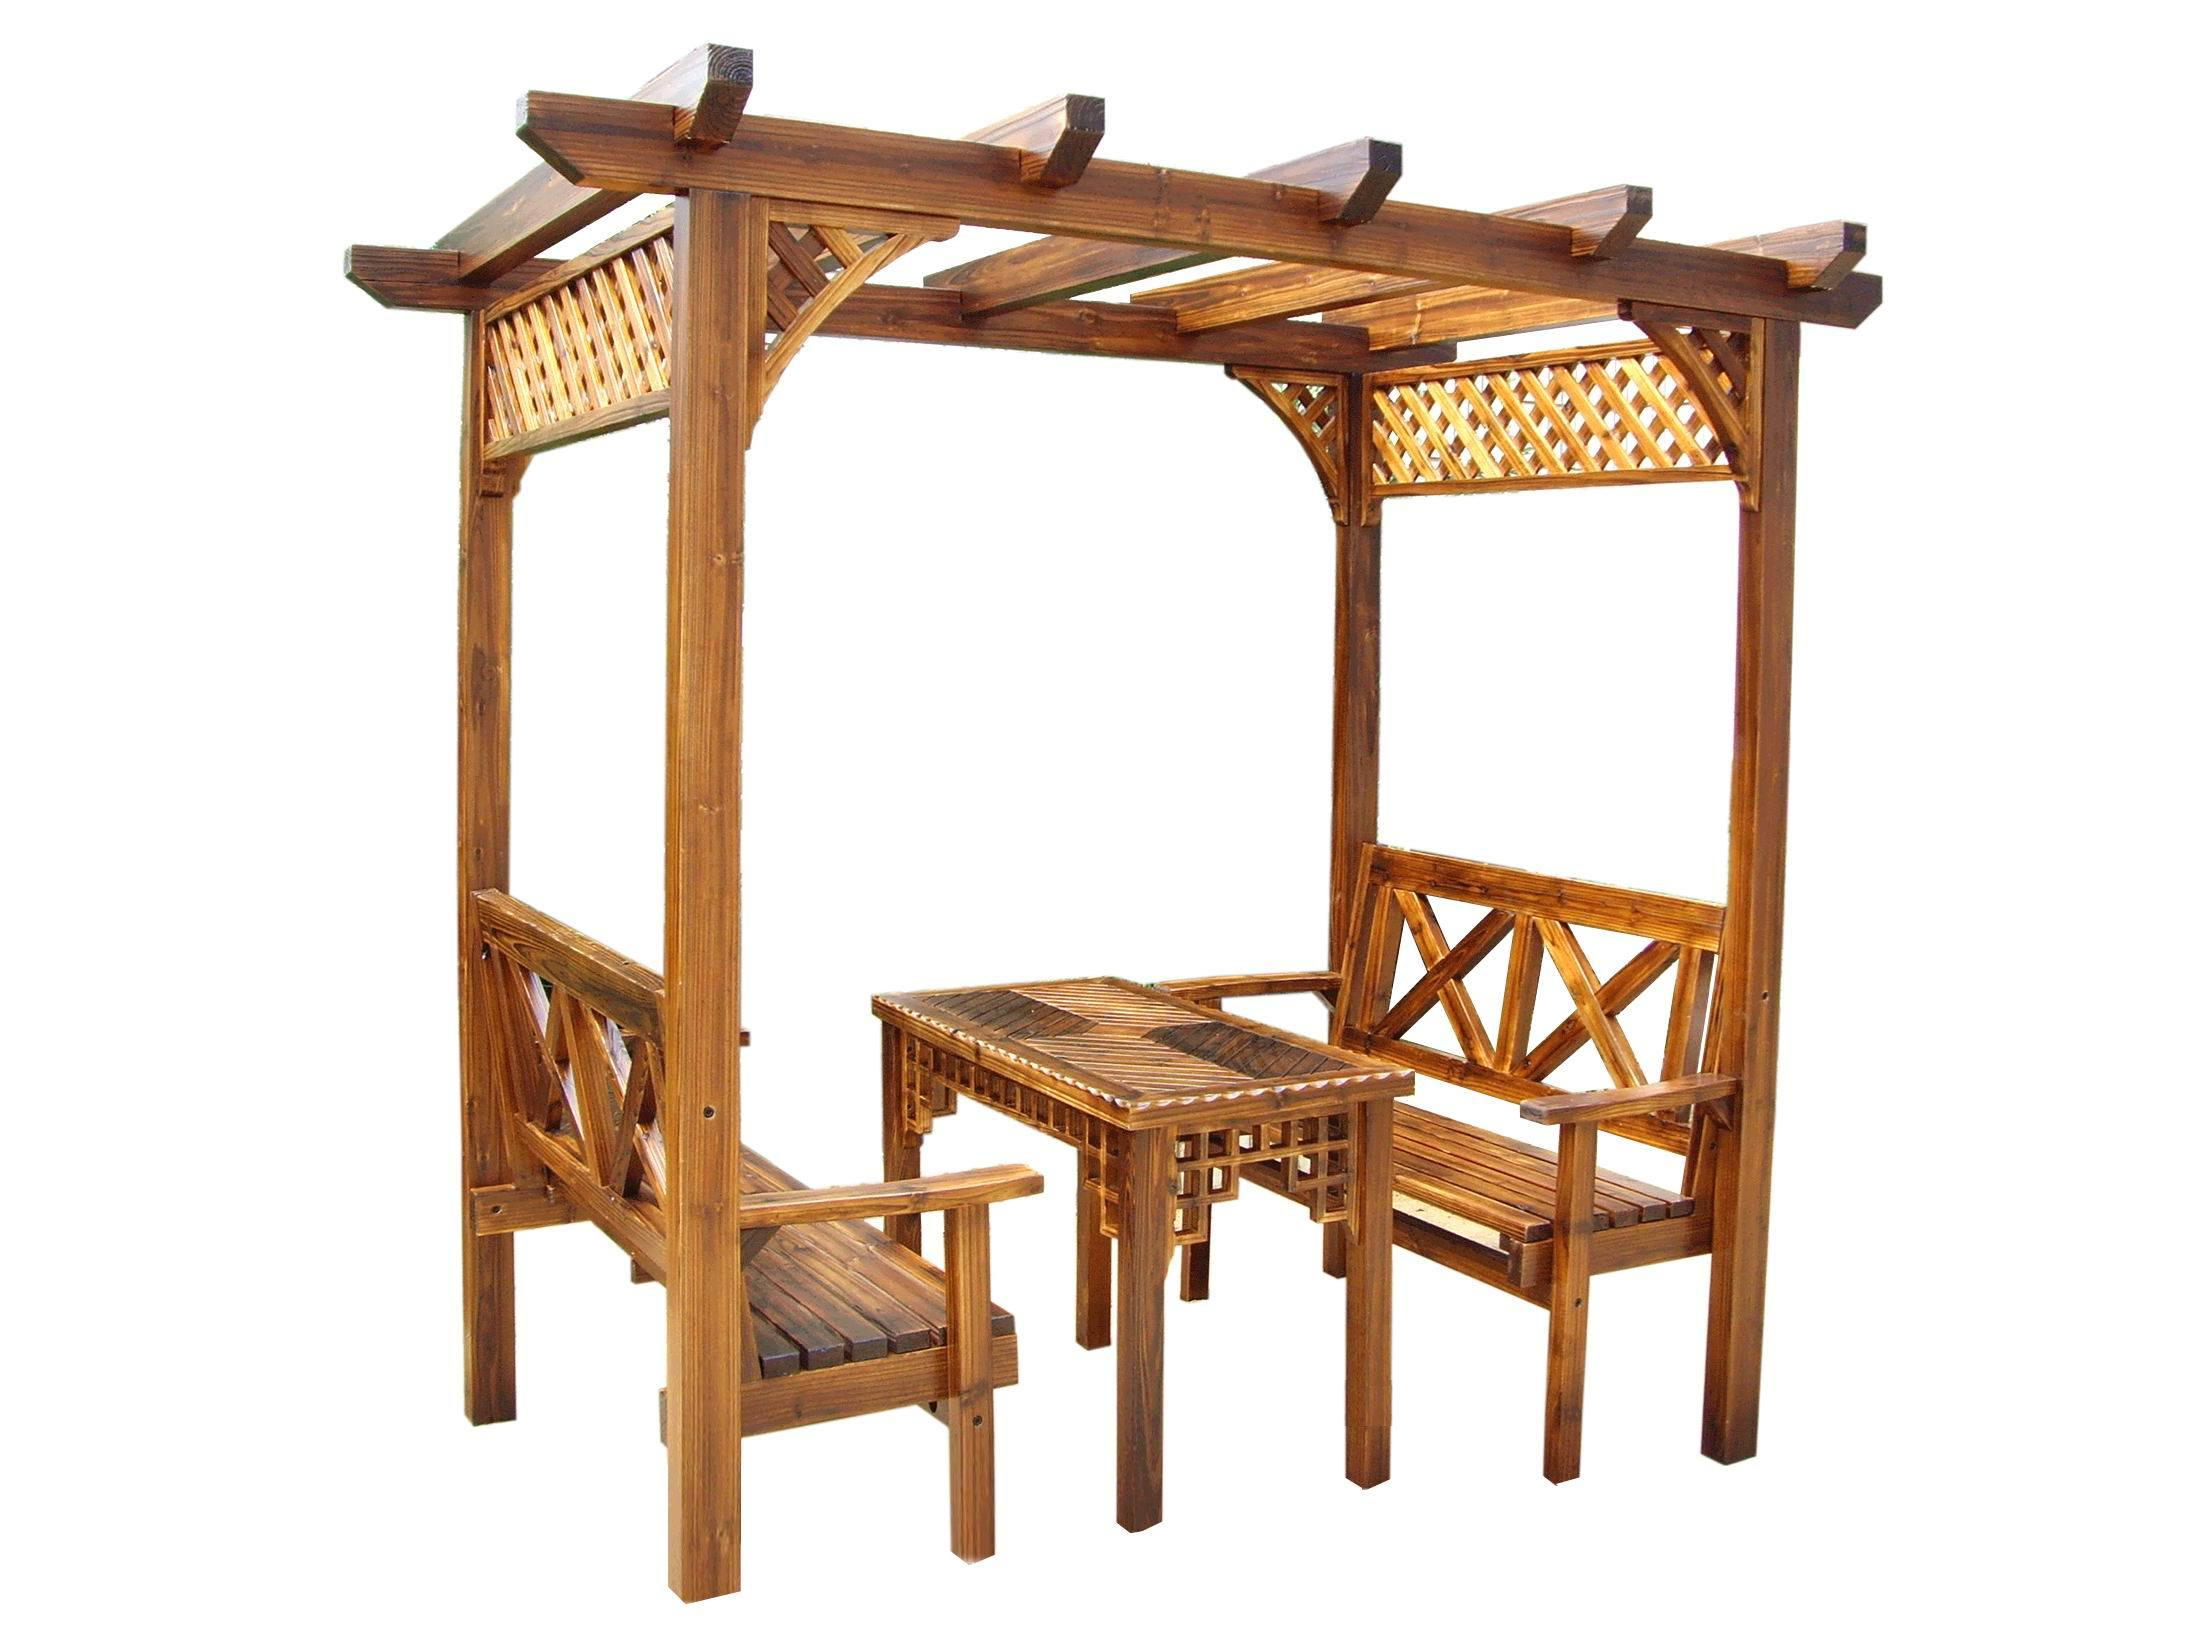 Outdoor furniture woodworking plans new design woodworking for Wooden furniture